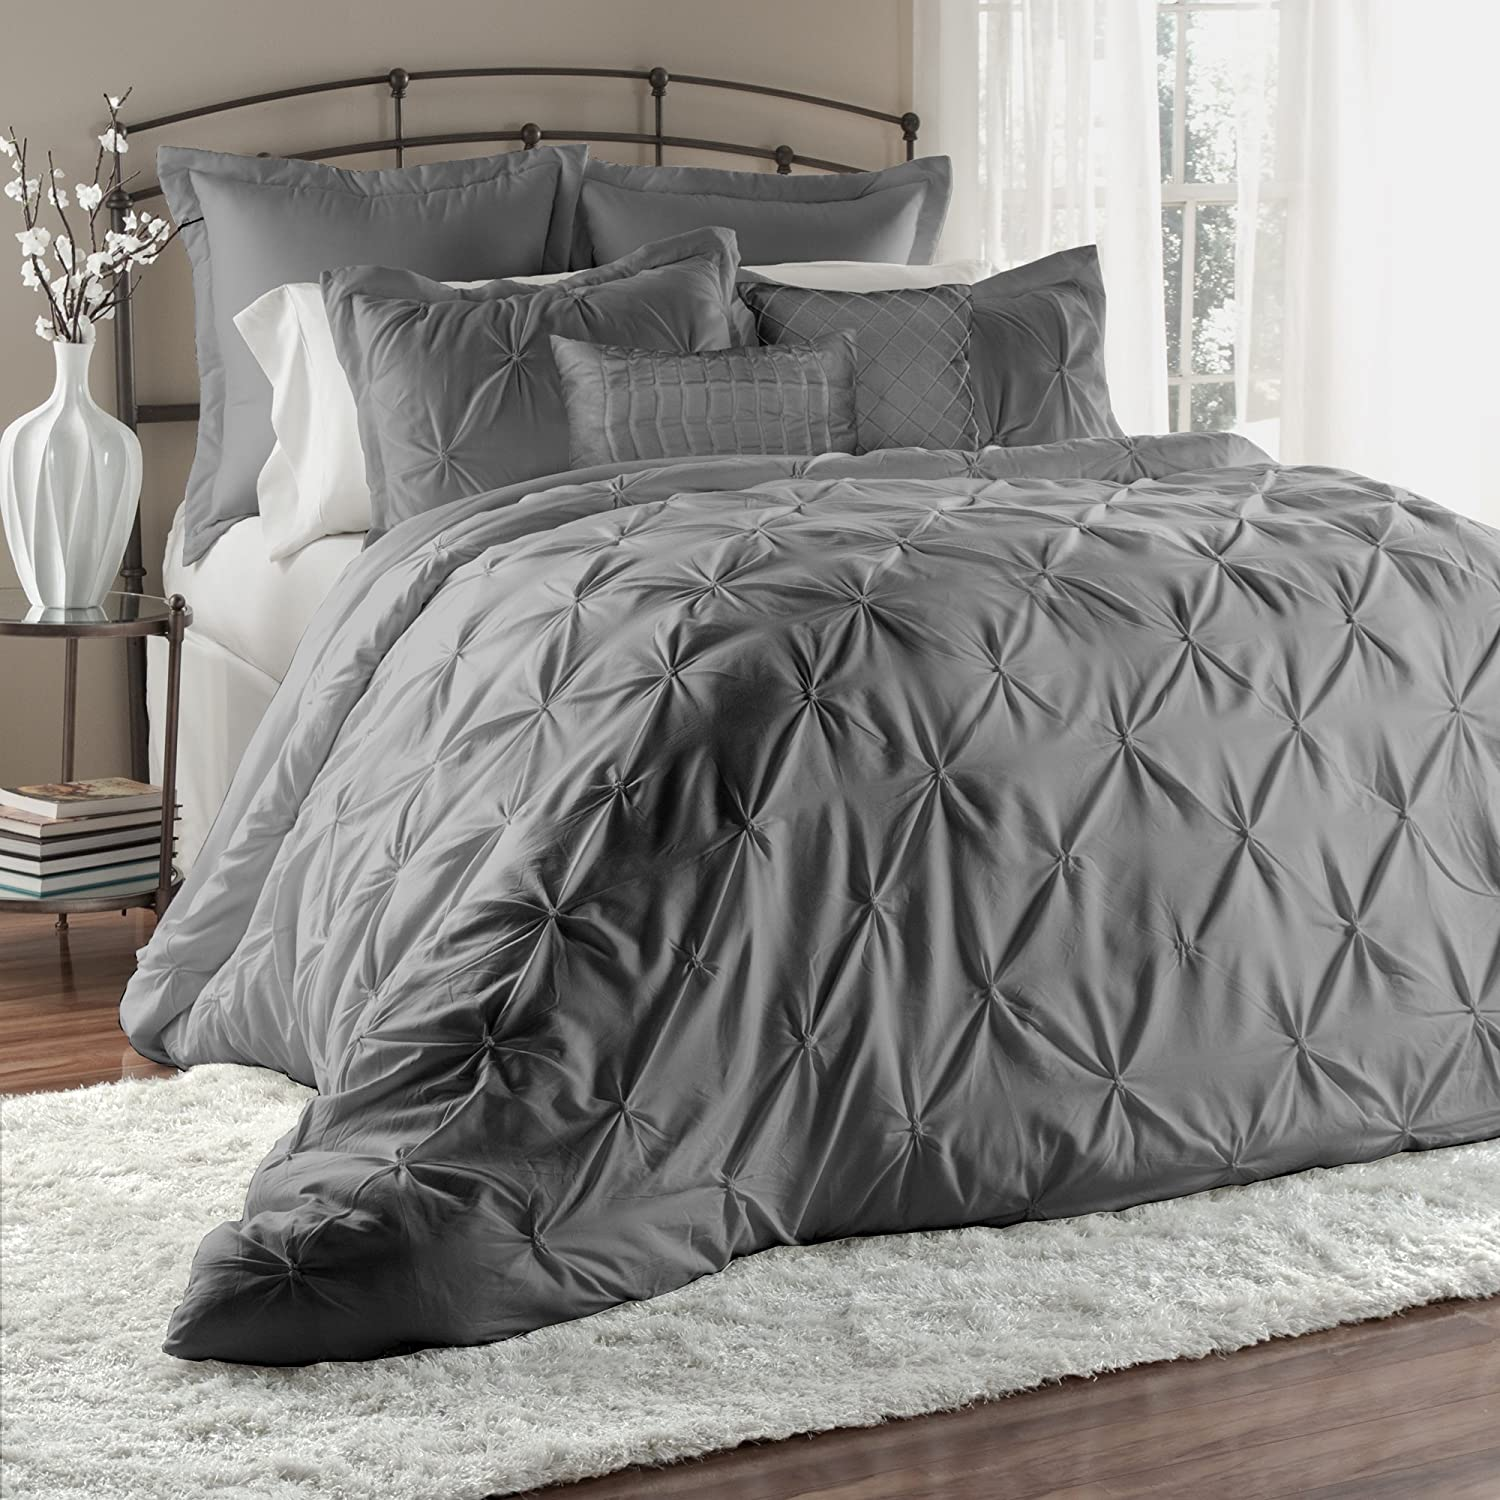 bedding set bellamy silver comforter gray p